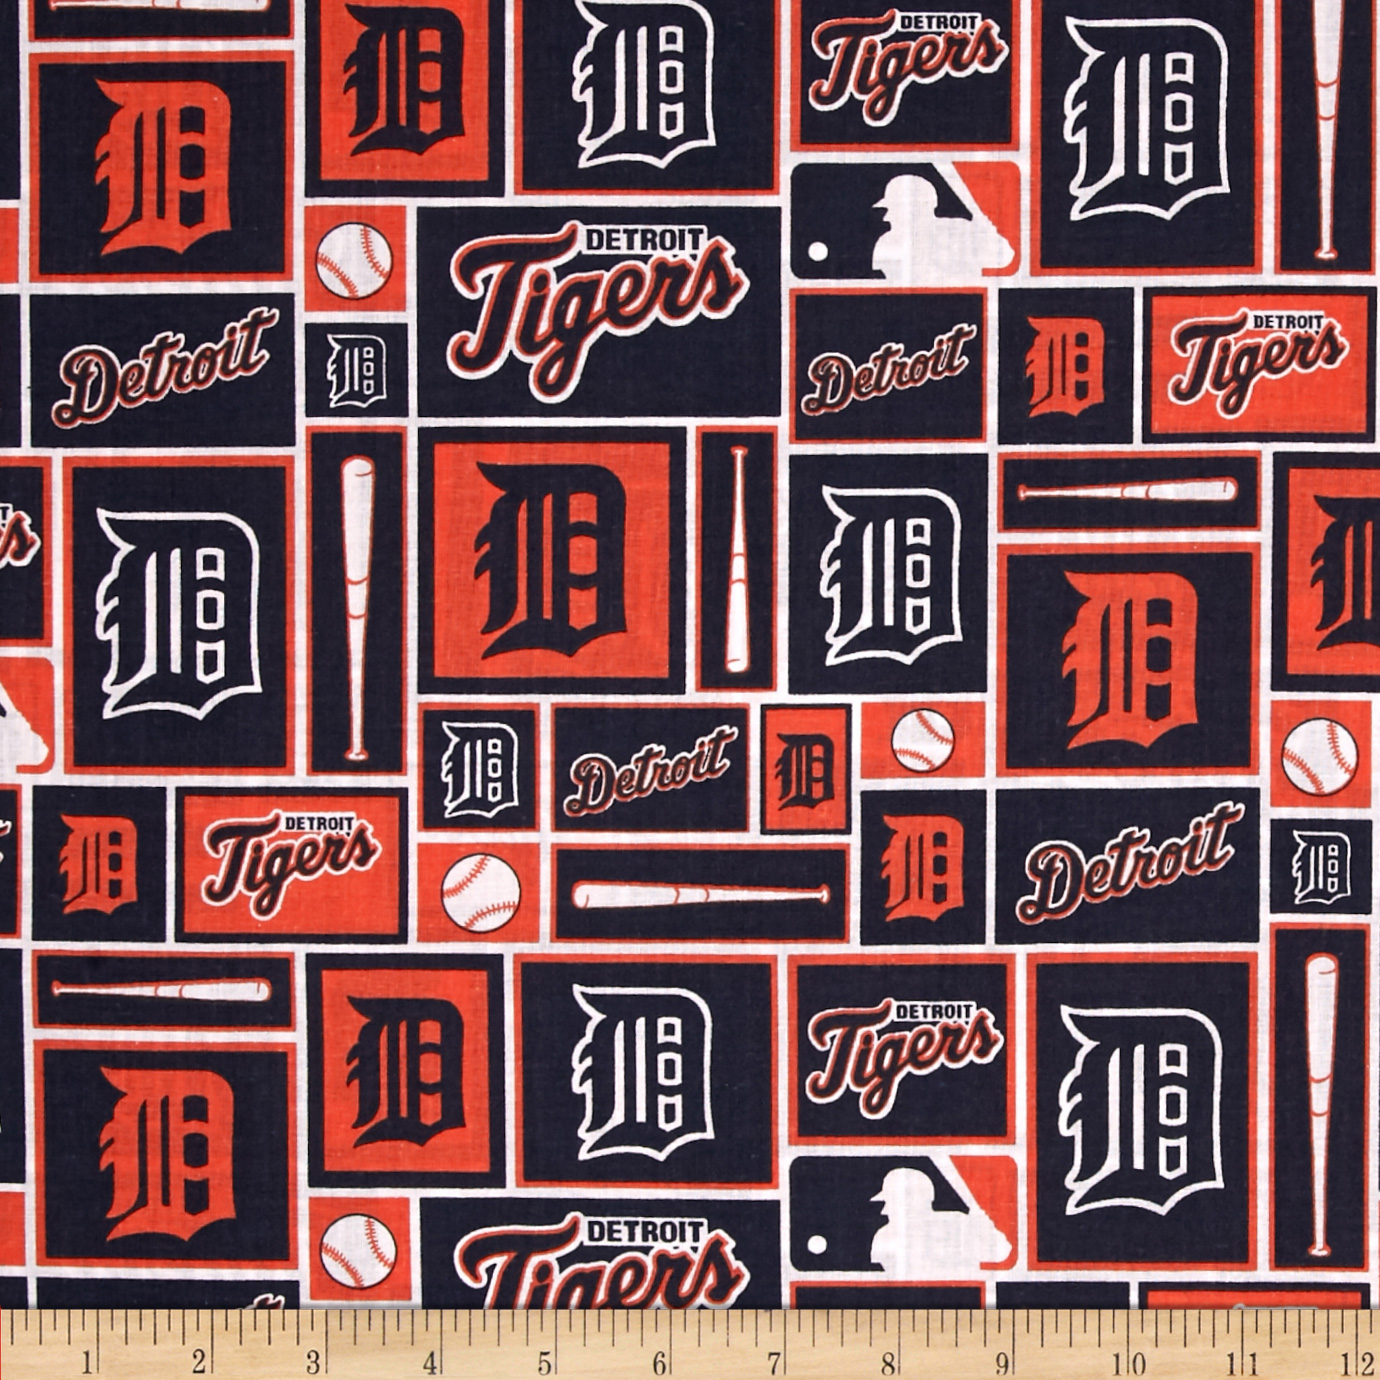 MLB Cotton Broadcloth Detroit Tigers Navy/Orange Fabric by Fabric Traditions in USA